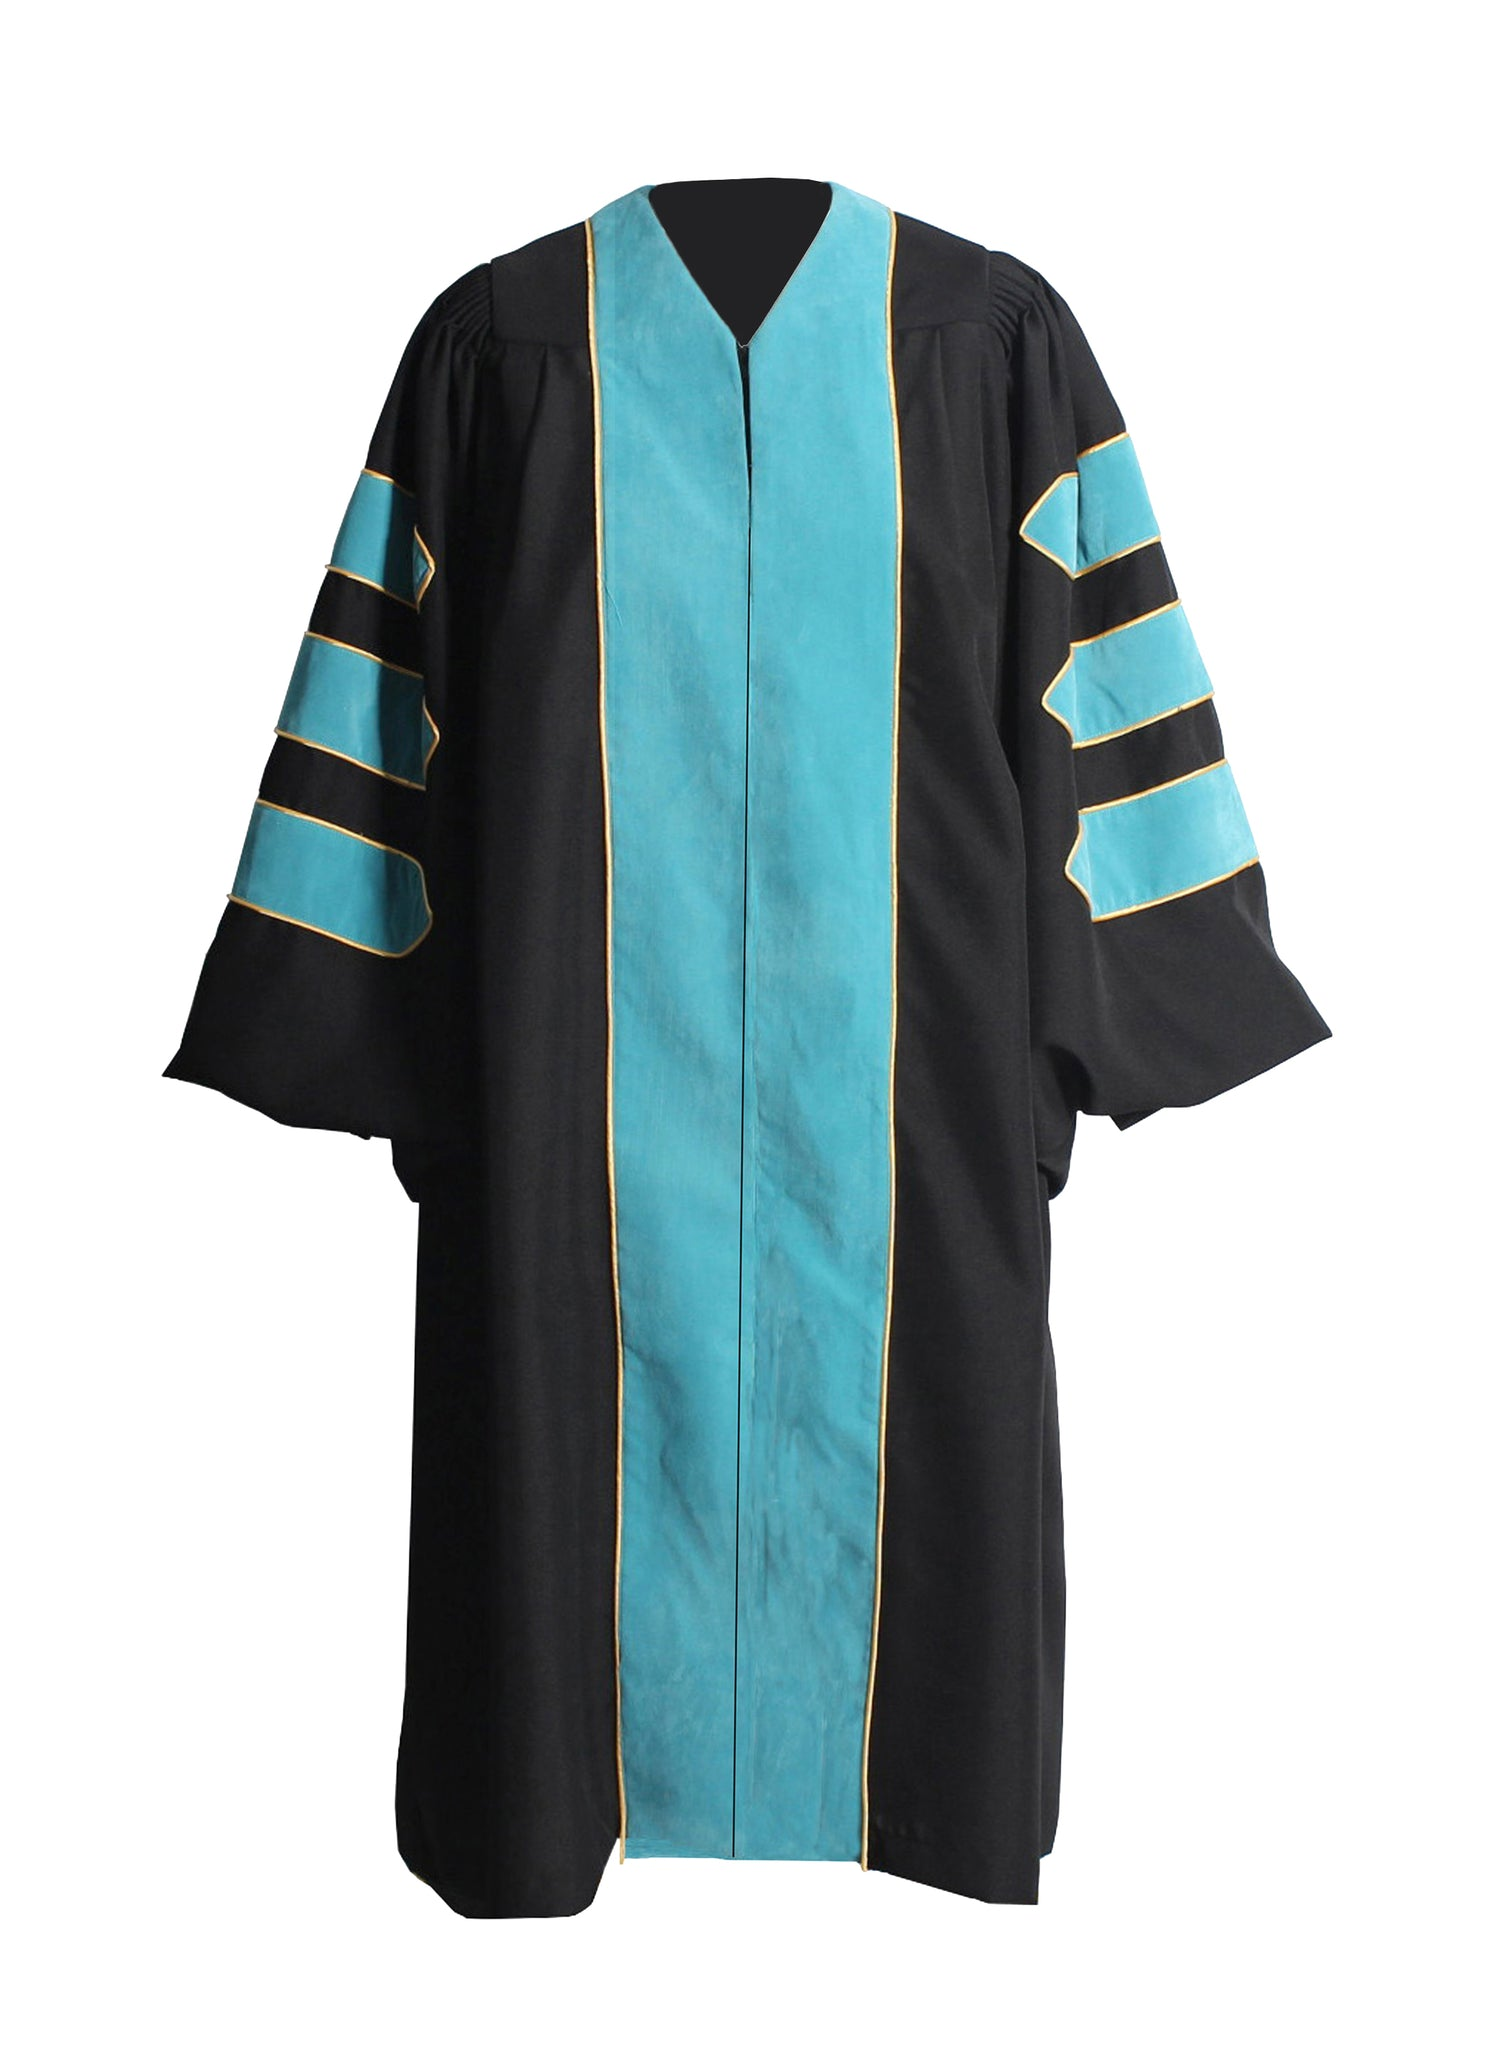 Deluxe DeepSky Blue Doctoral Graduation Gown Regalia Doctoral Gown Only with Gold Piping